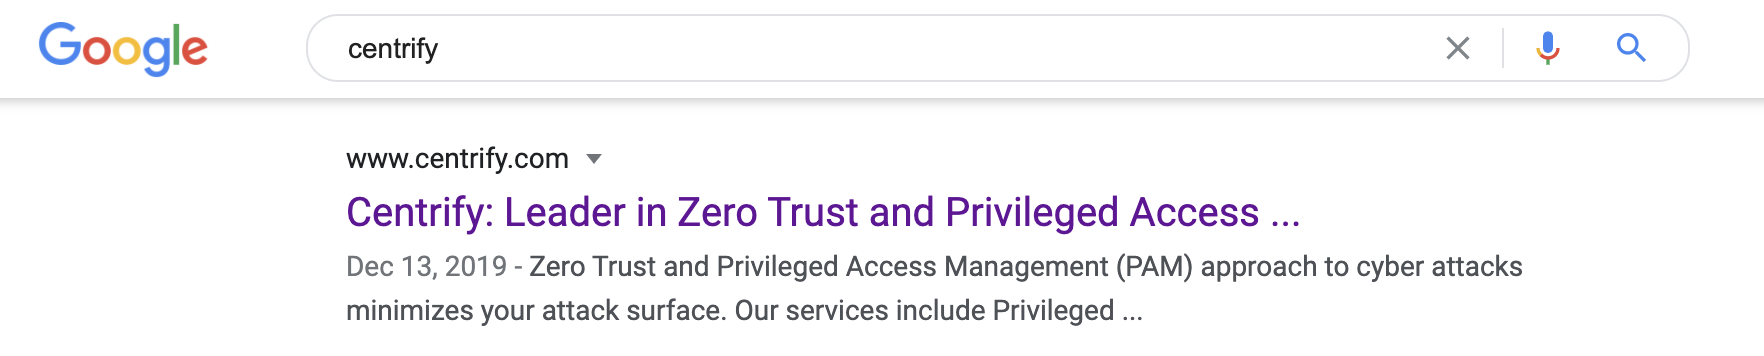 Centrify put Zero Trust ahead of Privileged Access Management.